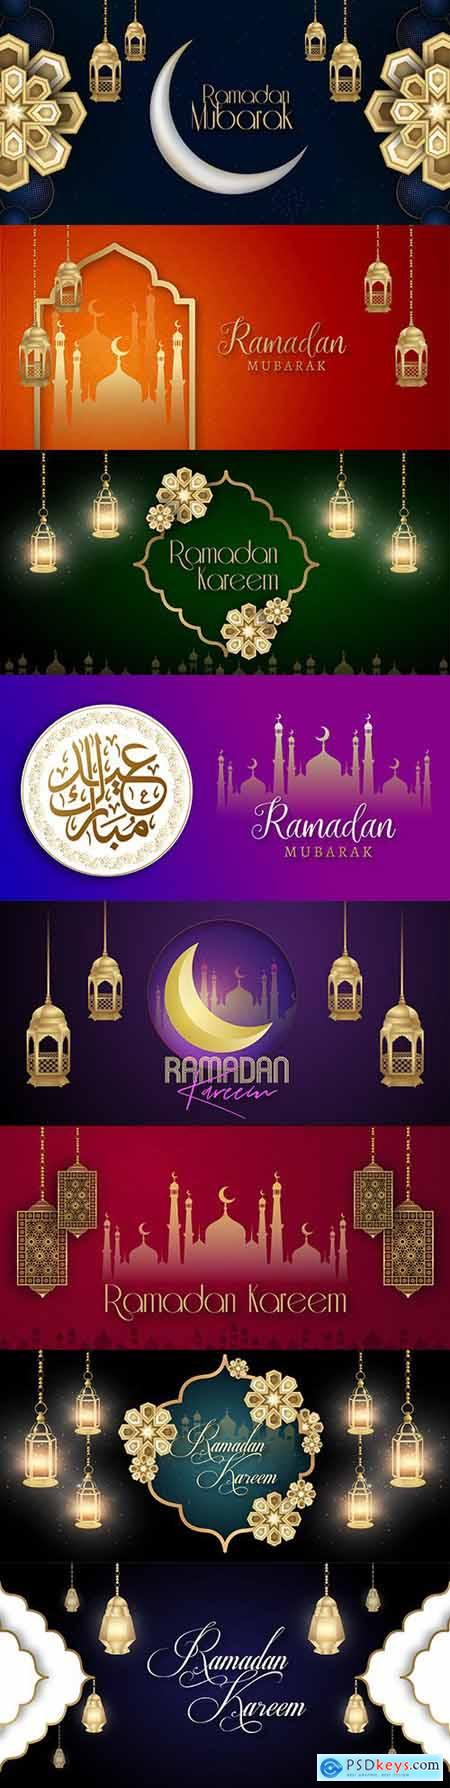 Ramadan Kareem Islamic social media banner design background